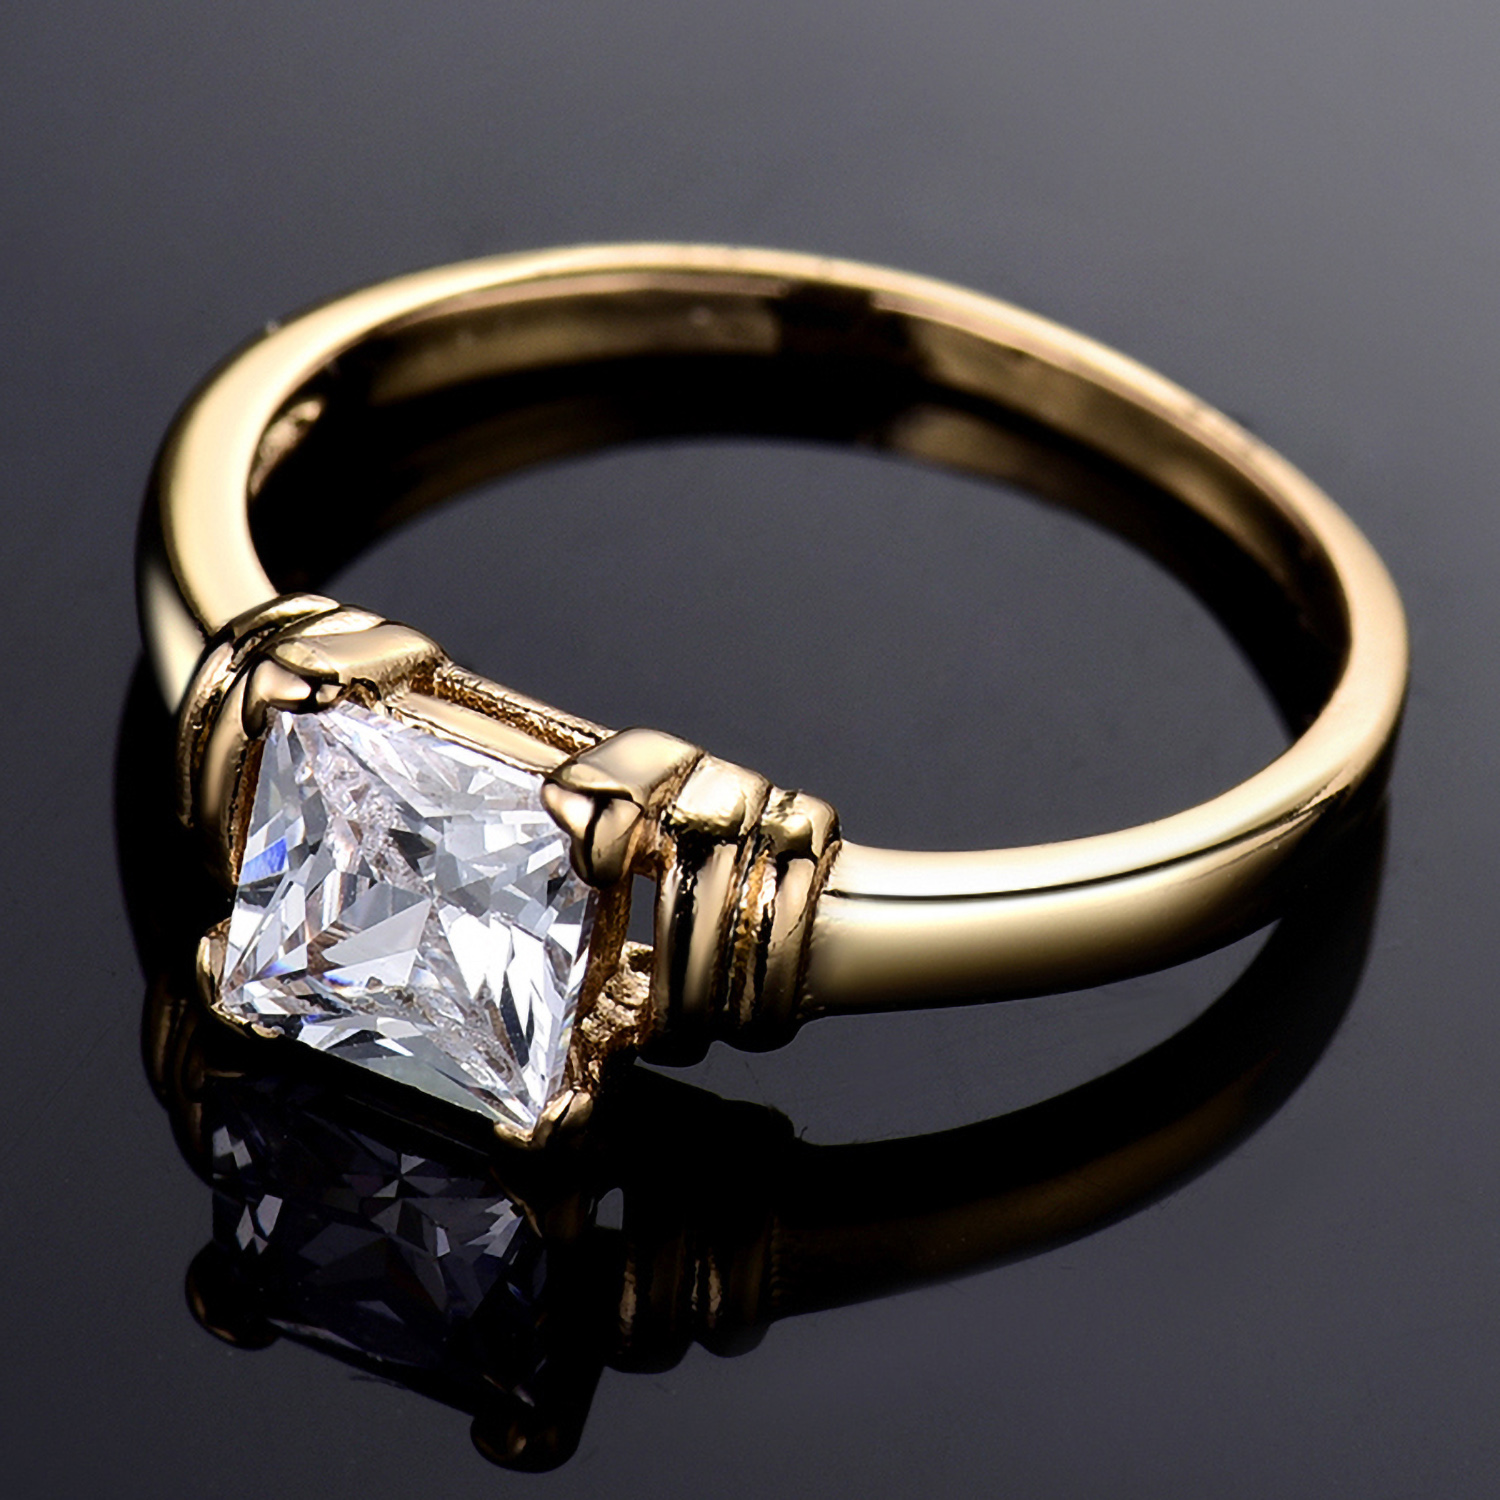 Details about Princess Cut Clear Swarovski Crystal 24K Gold Filled Women  Lady Finger Rings BOX 74ea0c705